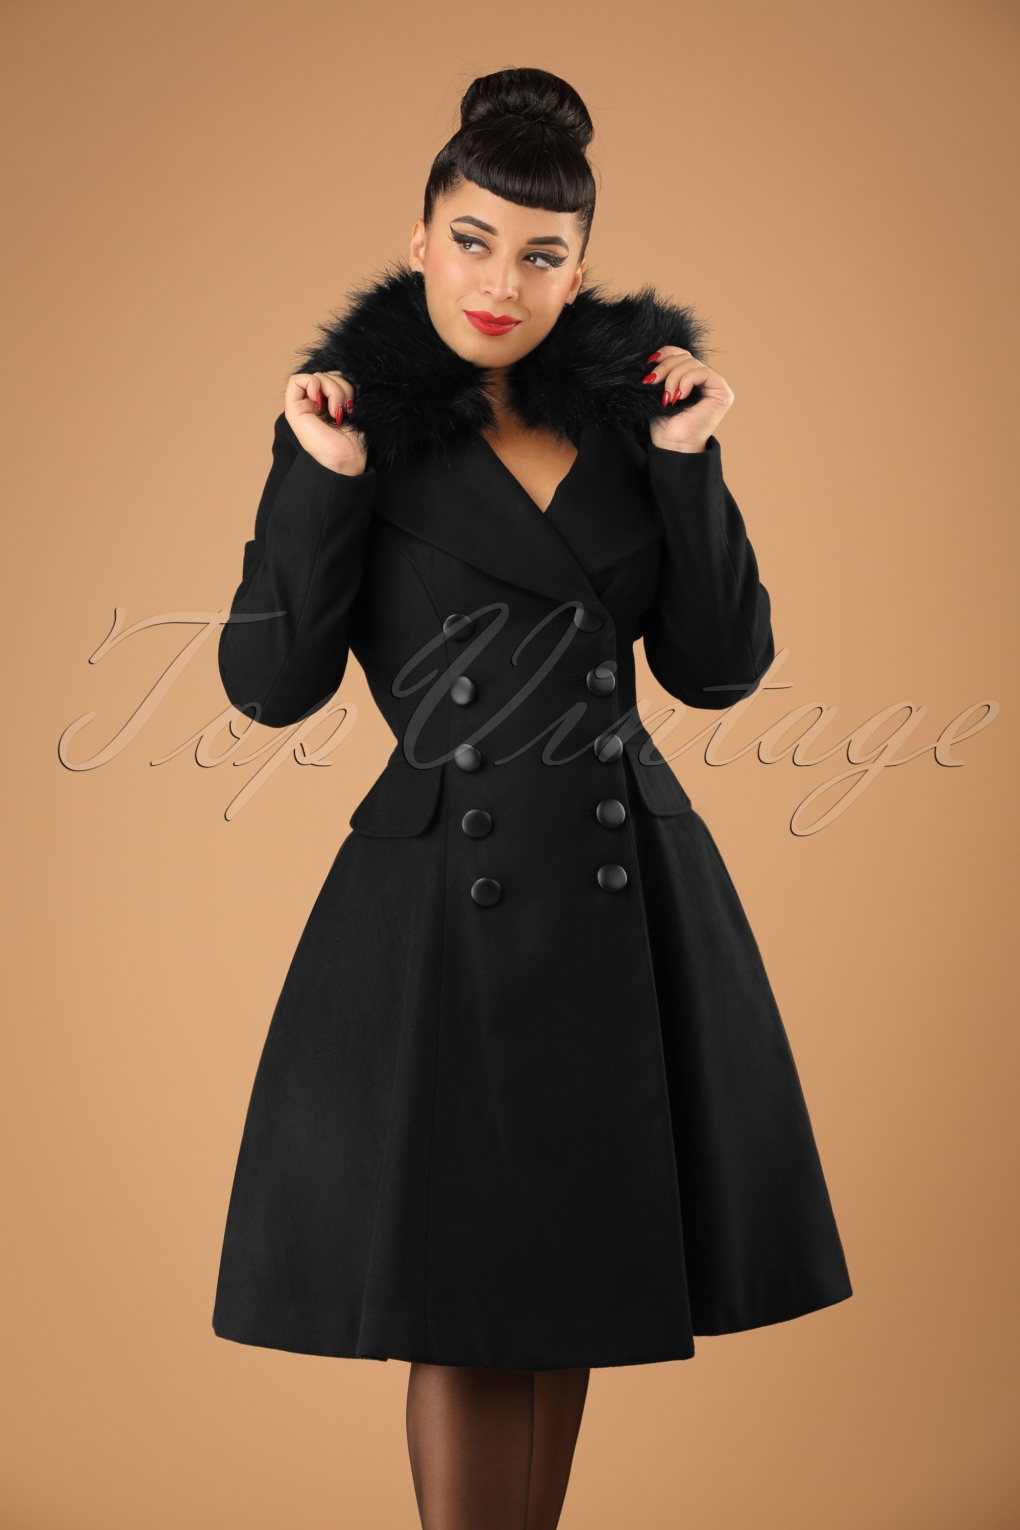 Vintage Coats & Jackets | Retro Coats and Jackets 50s Milan Coat in Black £112.20 AT vintagedancer.com